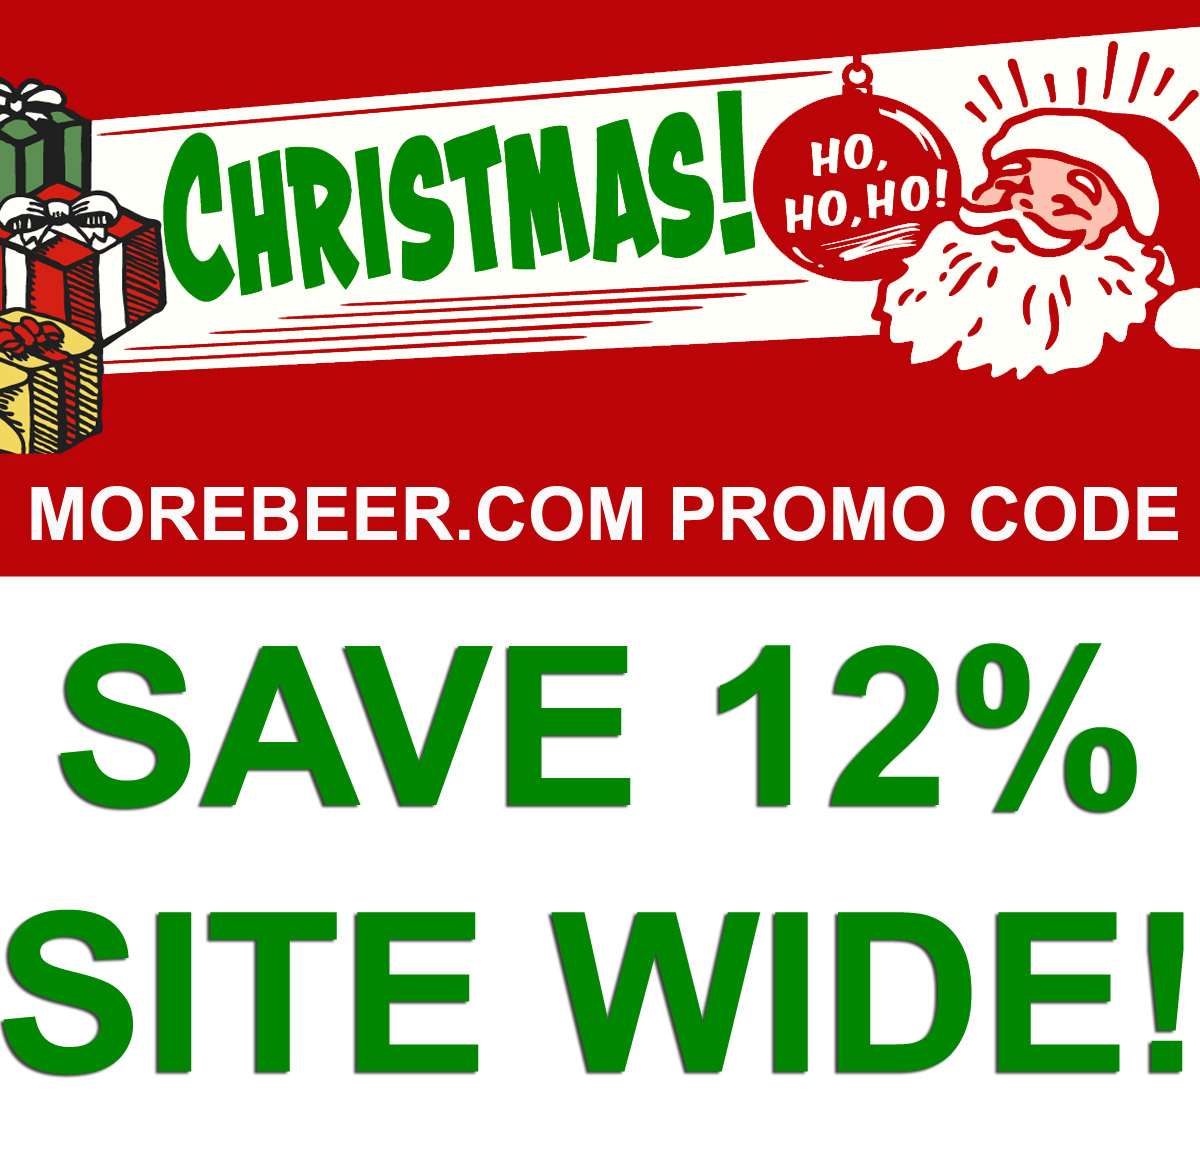 Home Brewer Promo Code for Save 12% Site Wide At MoreBeer.com With Promo Code Coupon Code